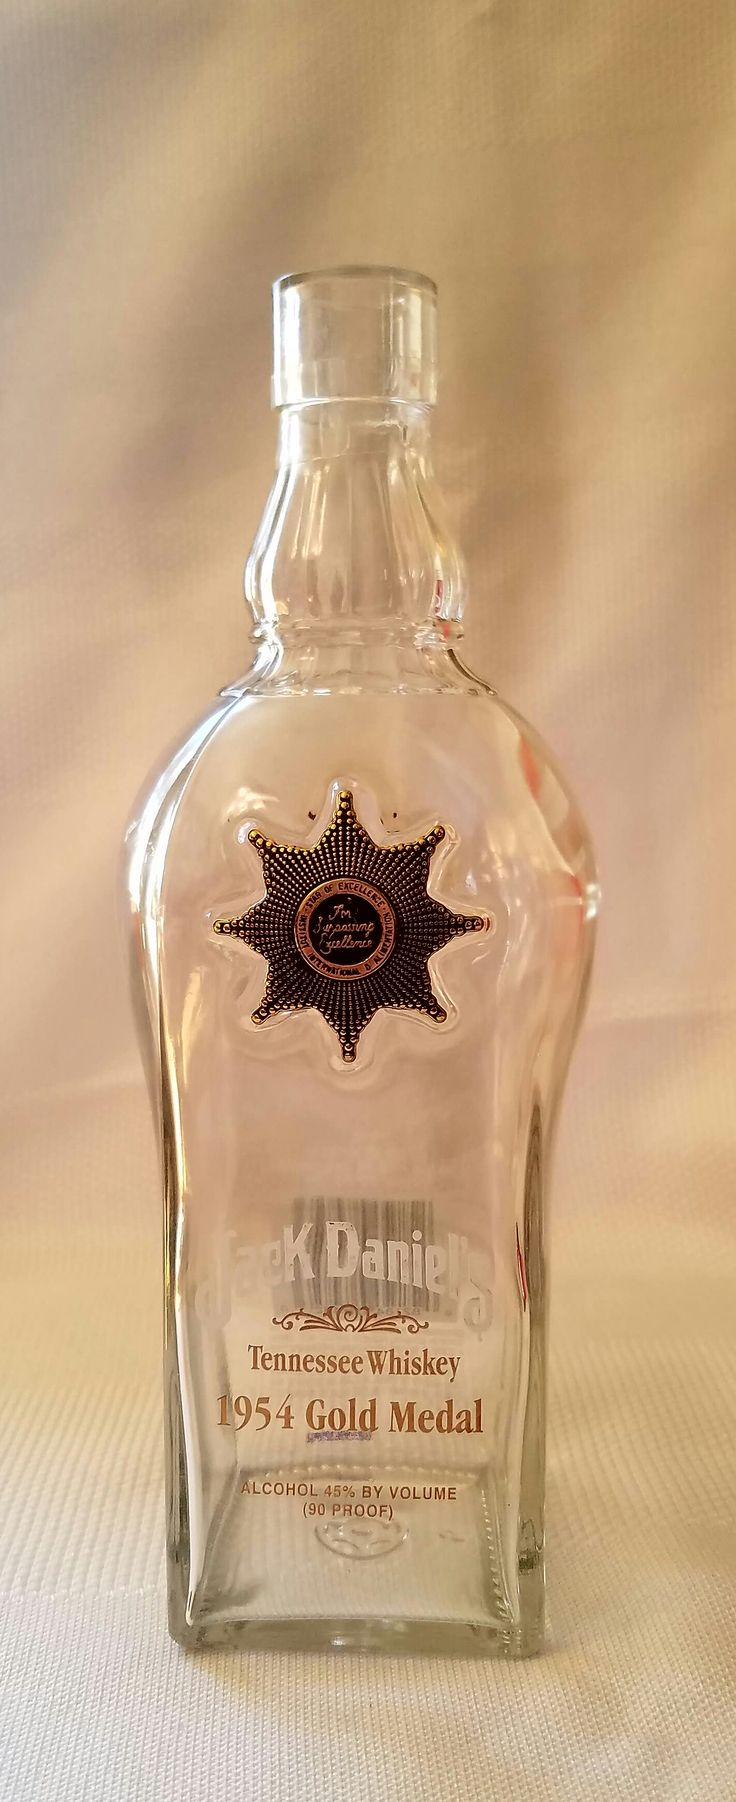 Jack Daniels Tennessee Whiskey 1954 Gold Medal Limited Edition Bottle 130960 Front